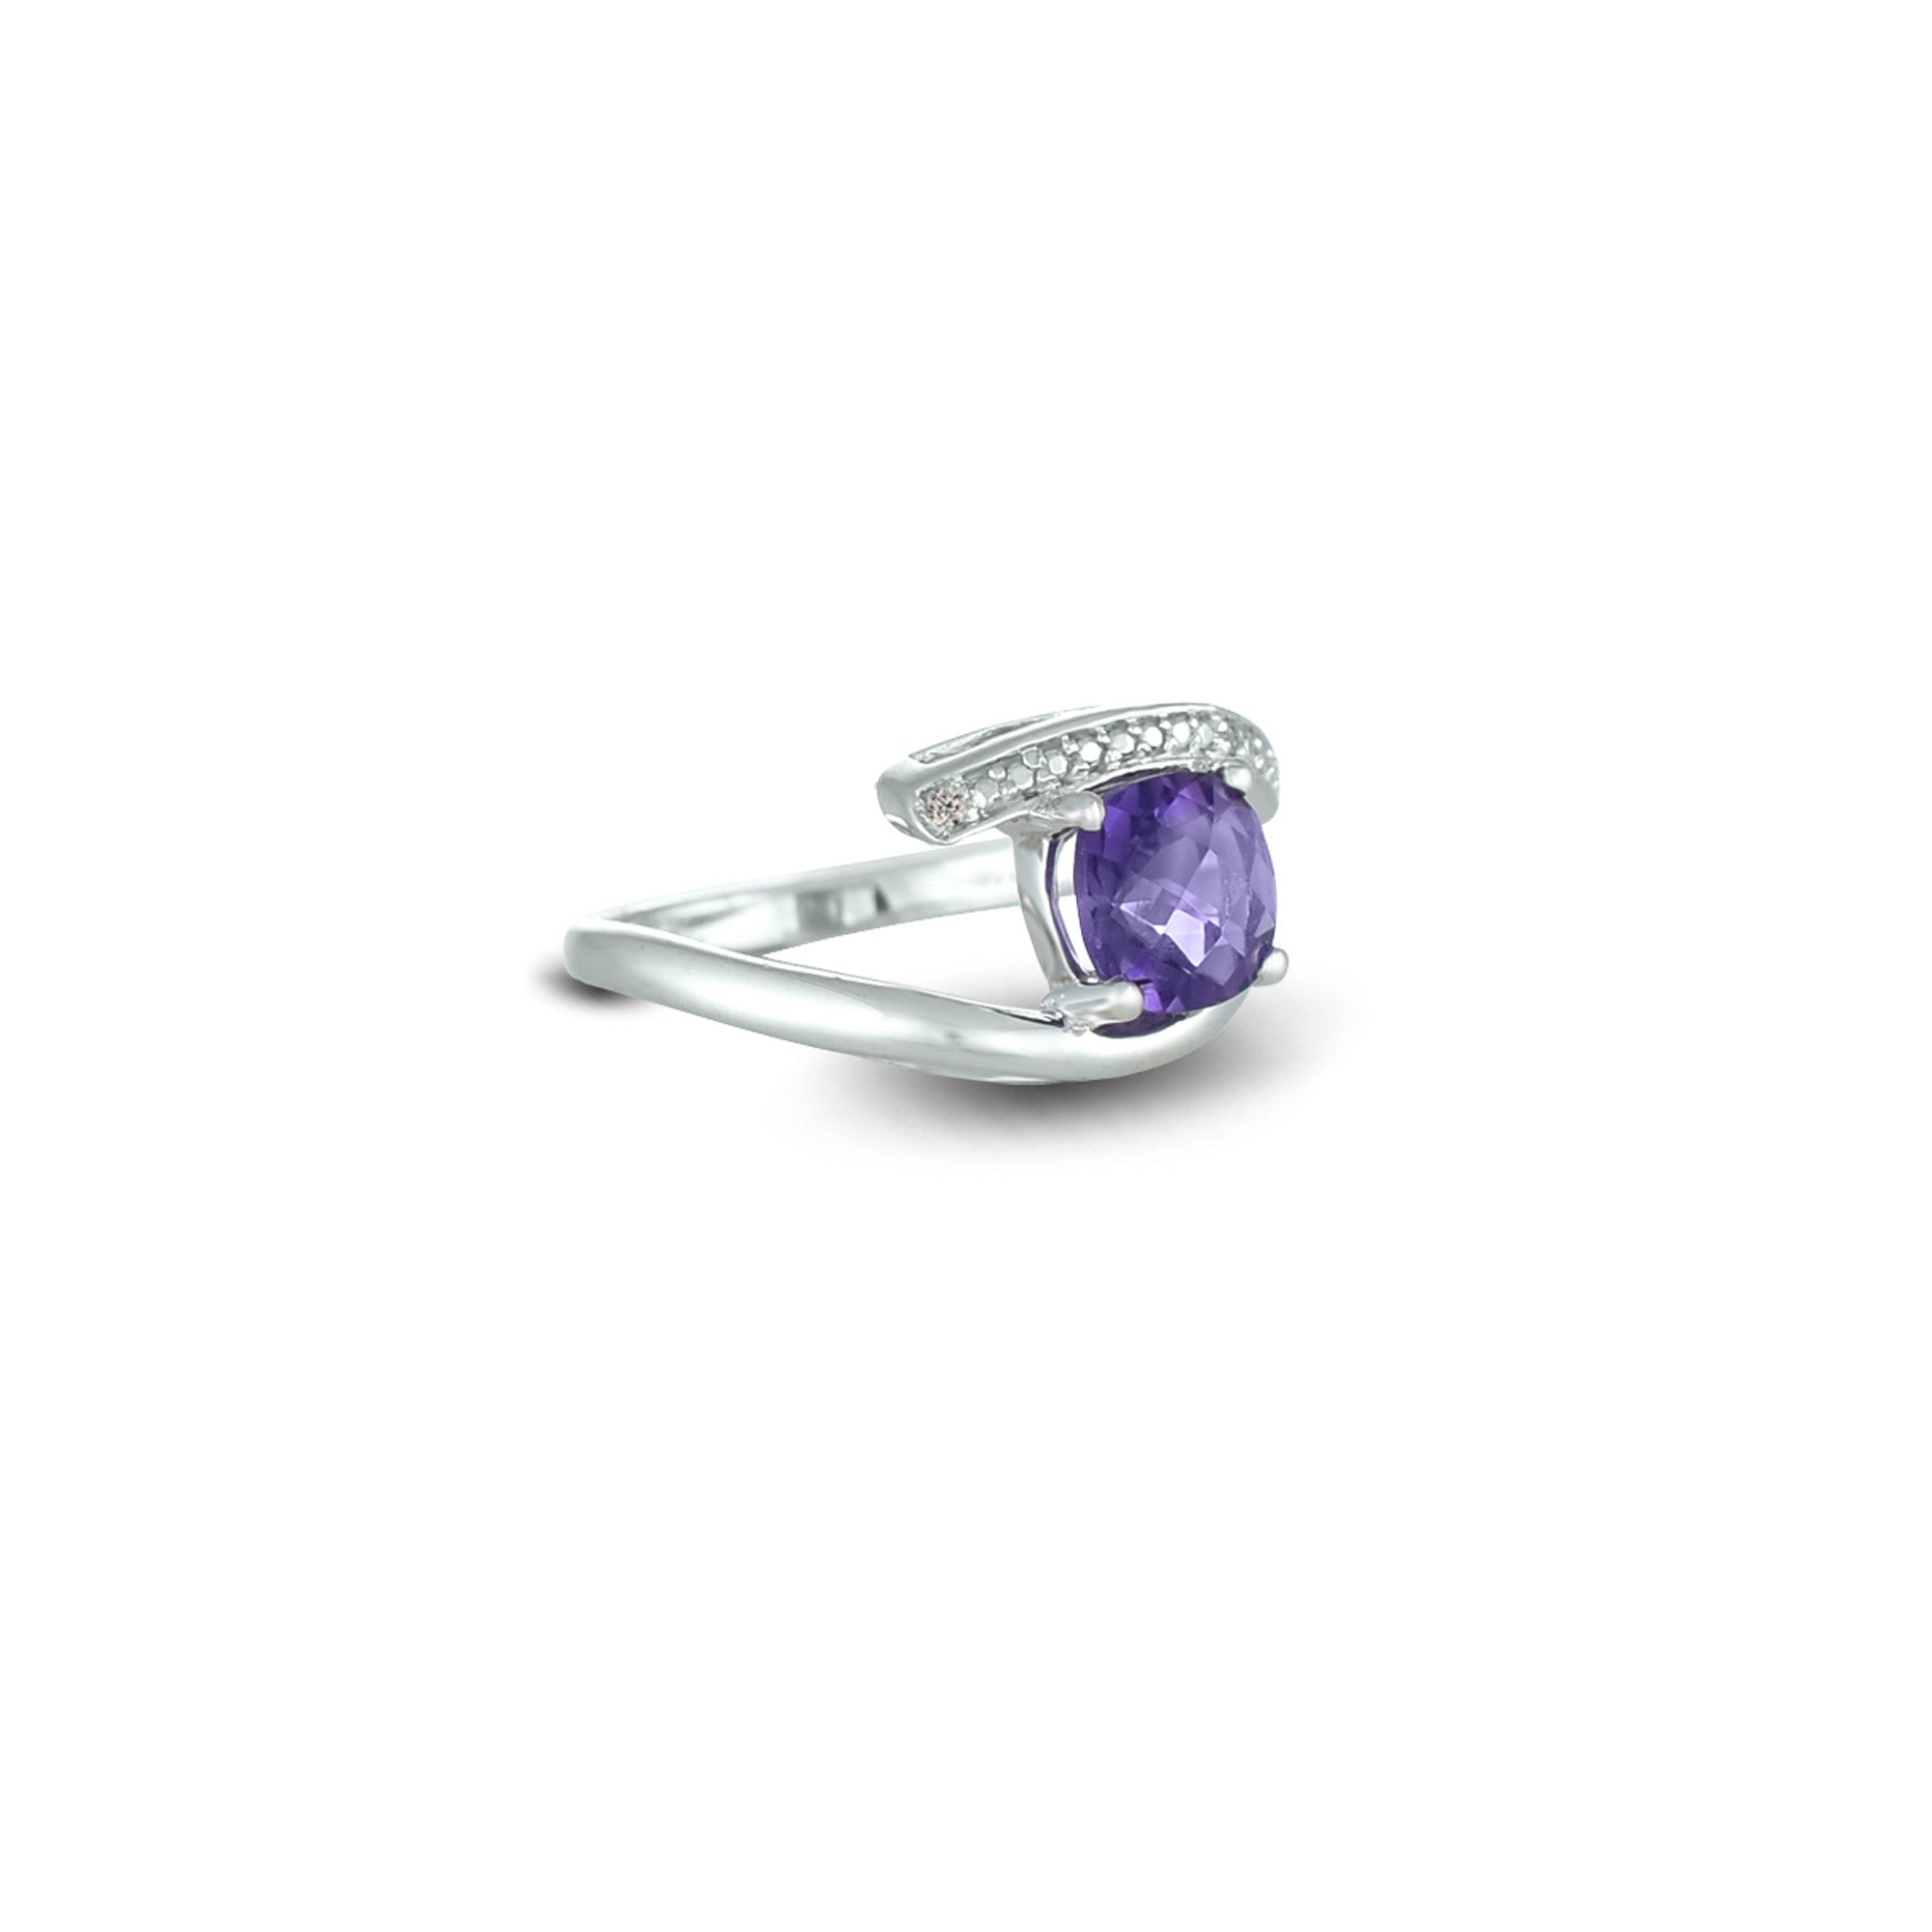 g and amethist miadora jewelry cushion tdw sterling watches shipping overstock green today cocktail product silver h cut amethyst engagement diamond halo free ring rings